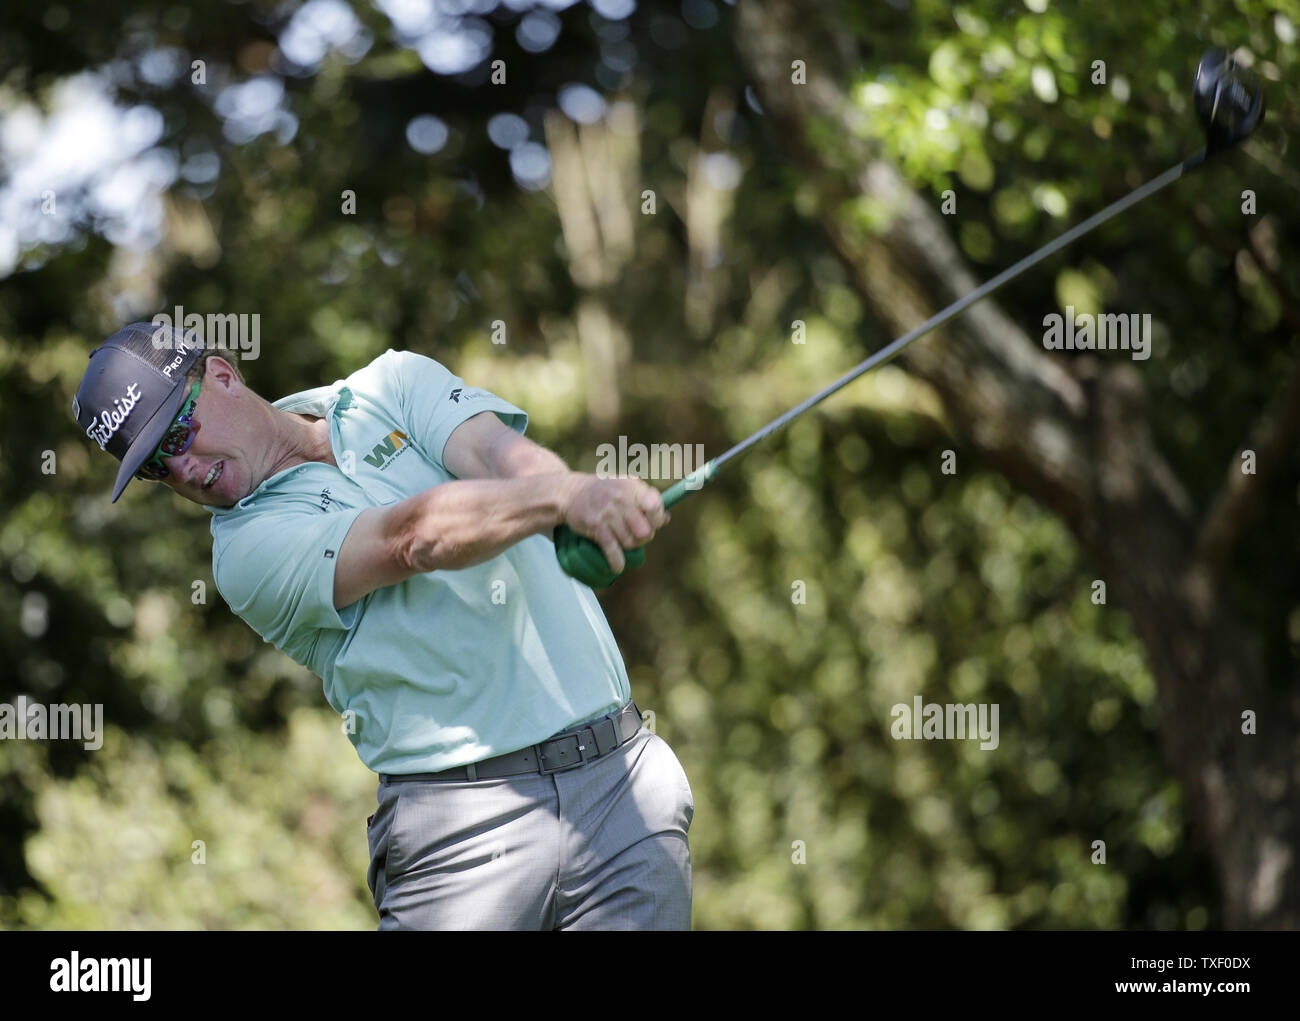 Charley Hoffman Stock Photos & Charley Hoffman Stock Images